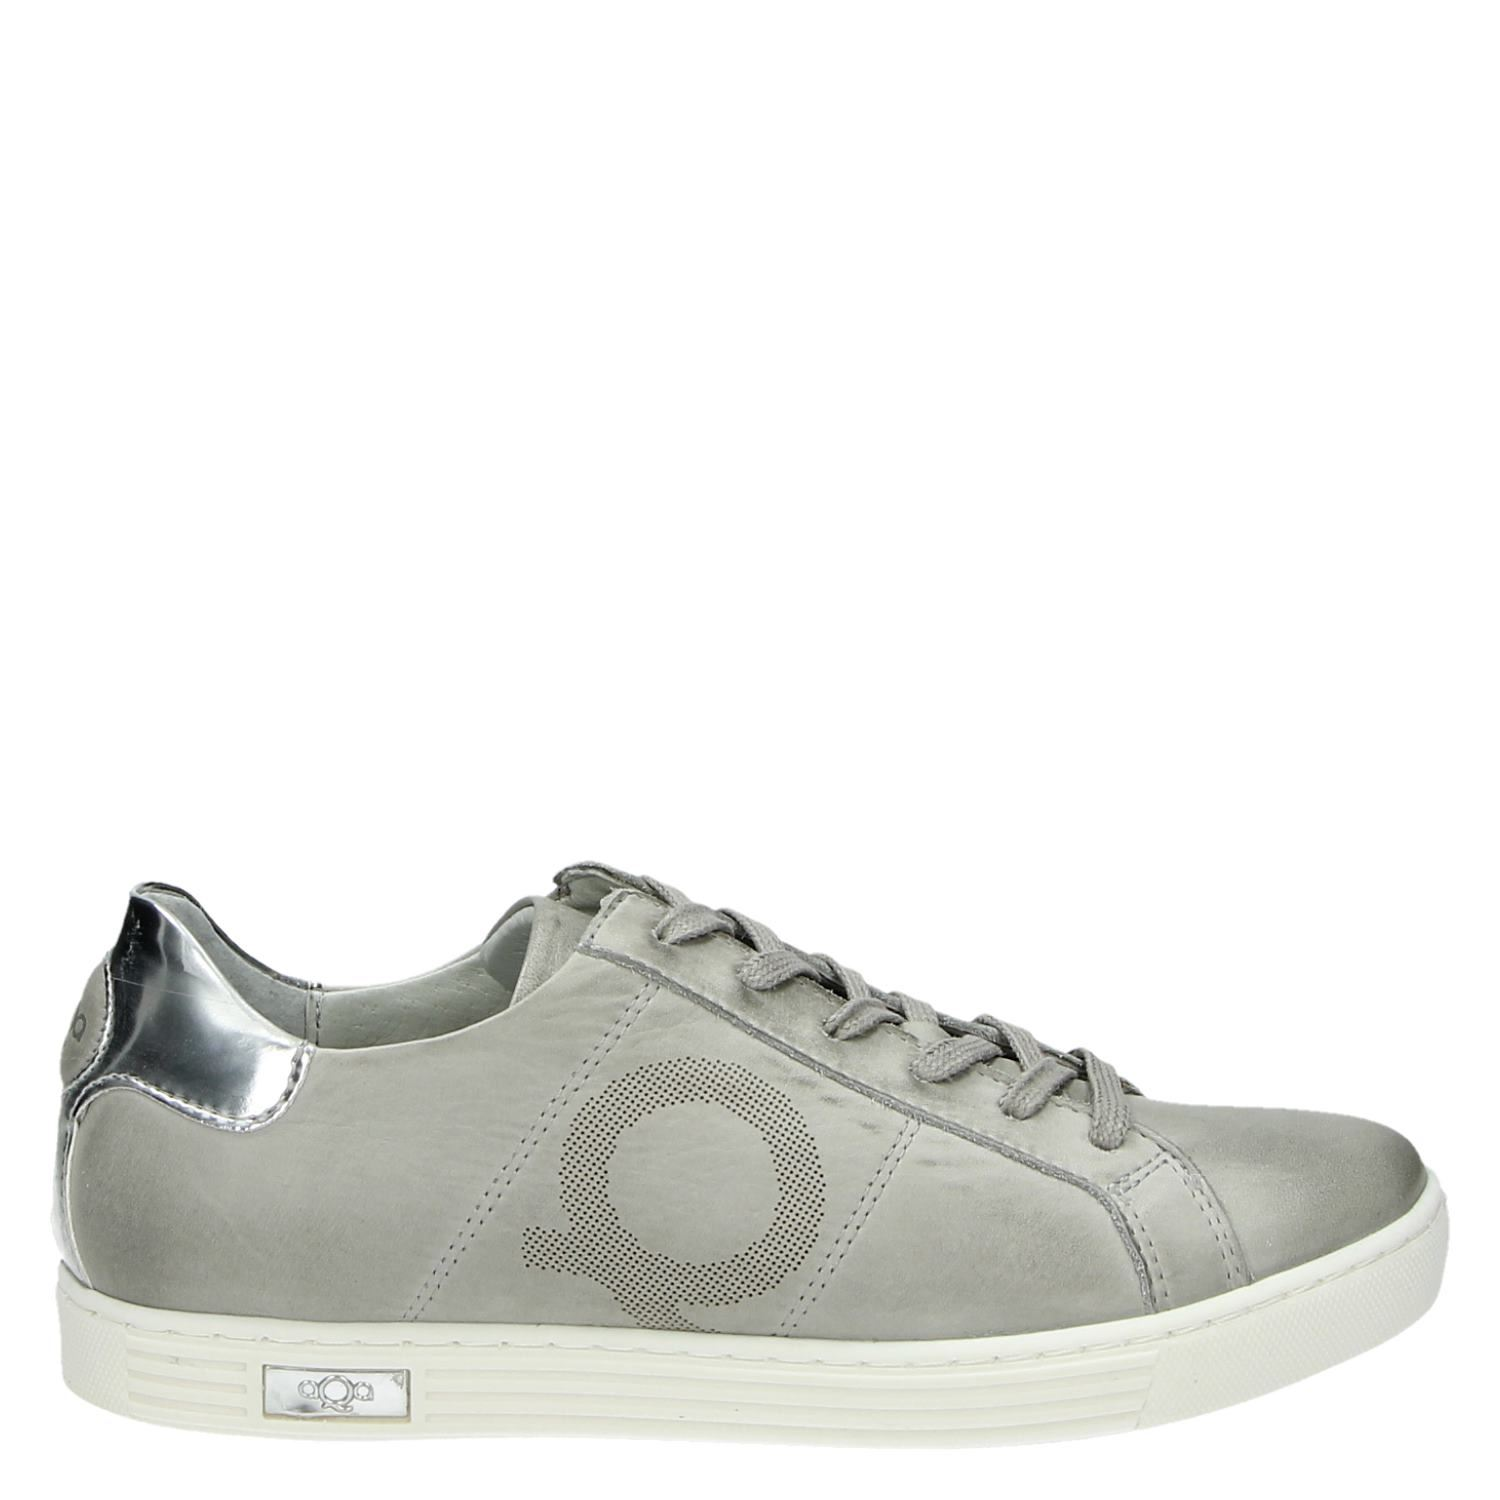 Chaussures Gris Aqa oQBy5Kx5